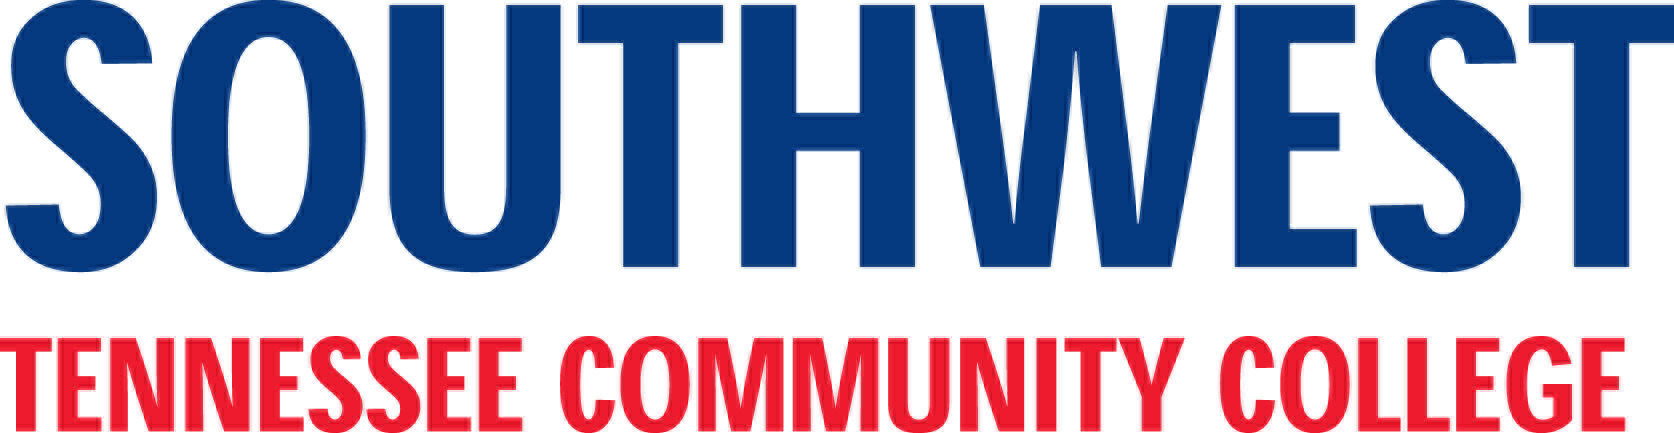 Southwest Tennessee Community College Awarded Veteran's Education Transition Support Designation